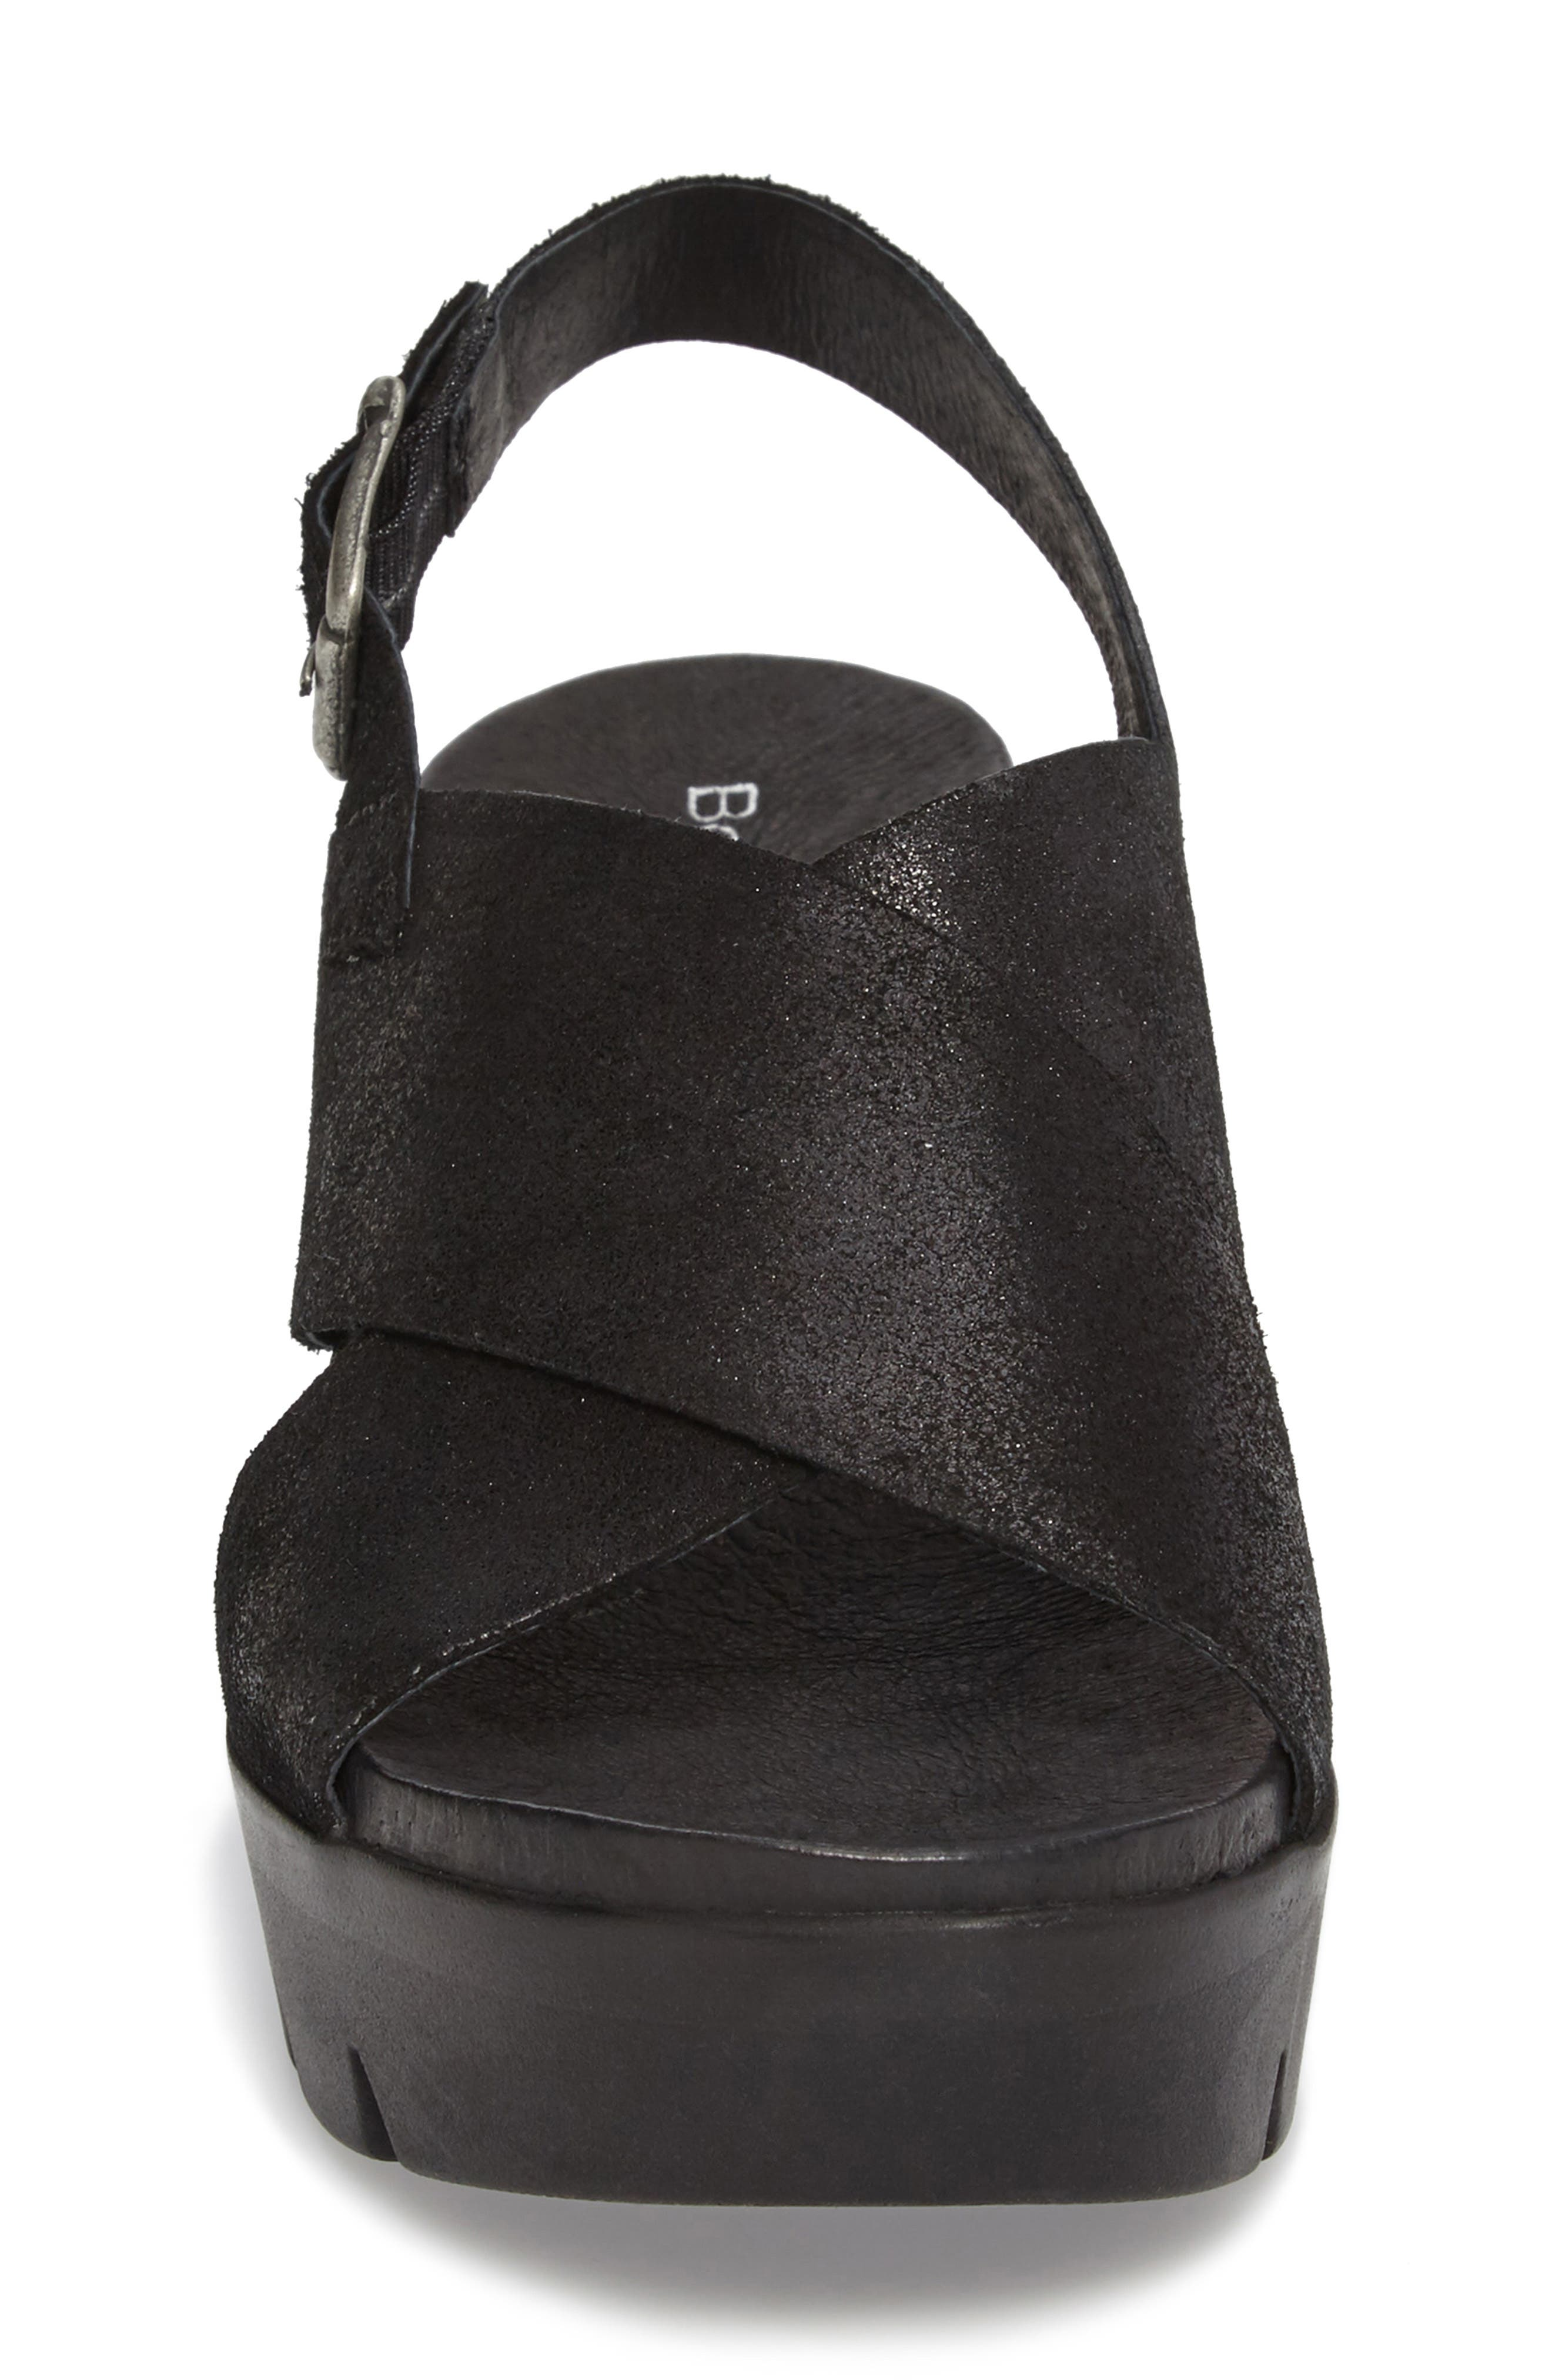 Payton Platform Wedge Sandal,                             Alternate thumbnail 4, color,                             001